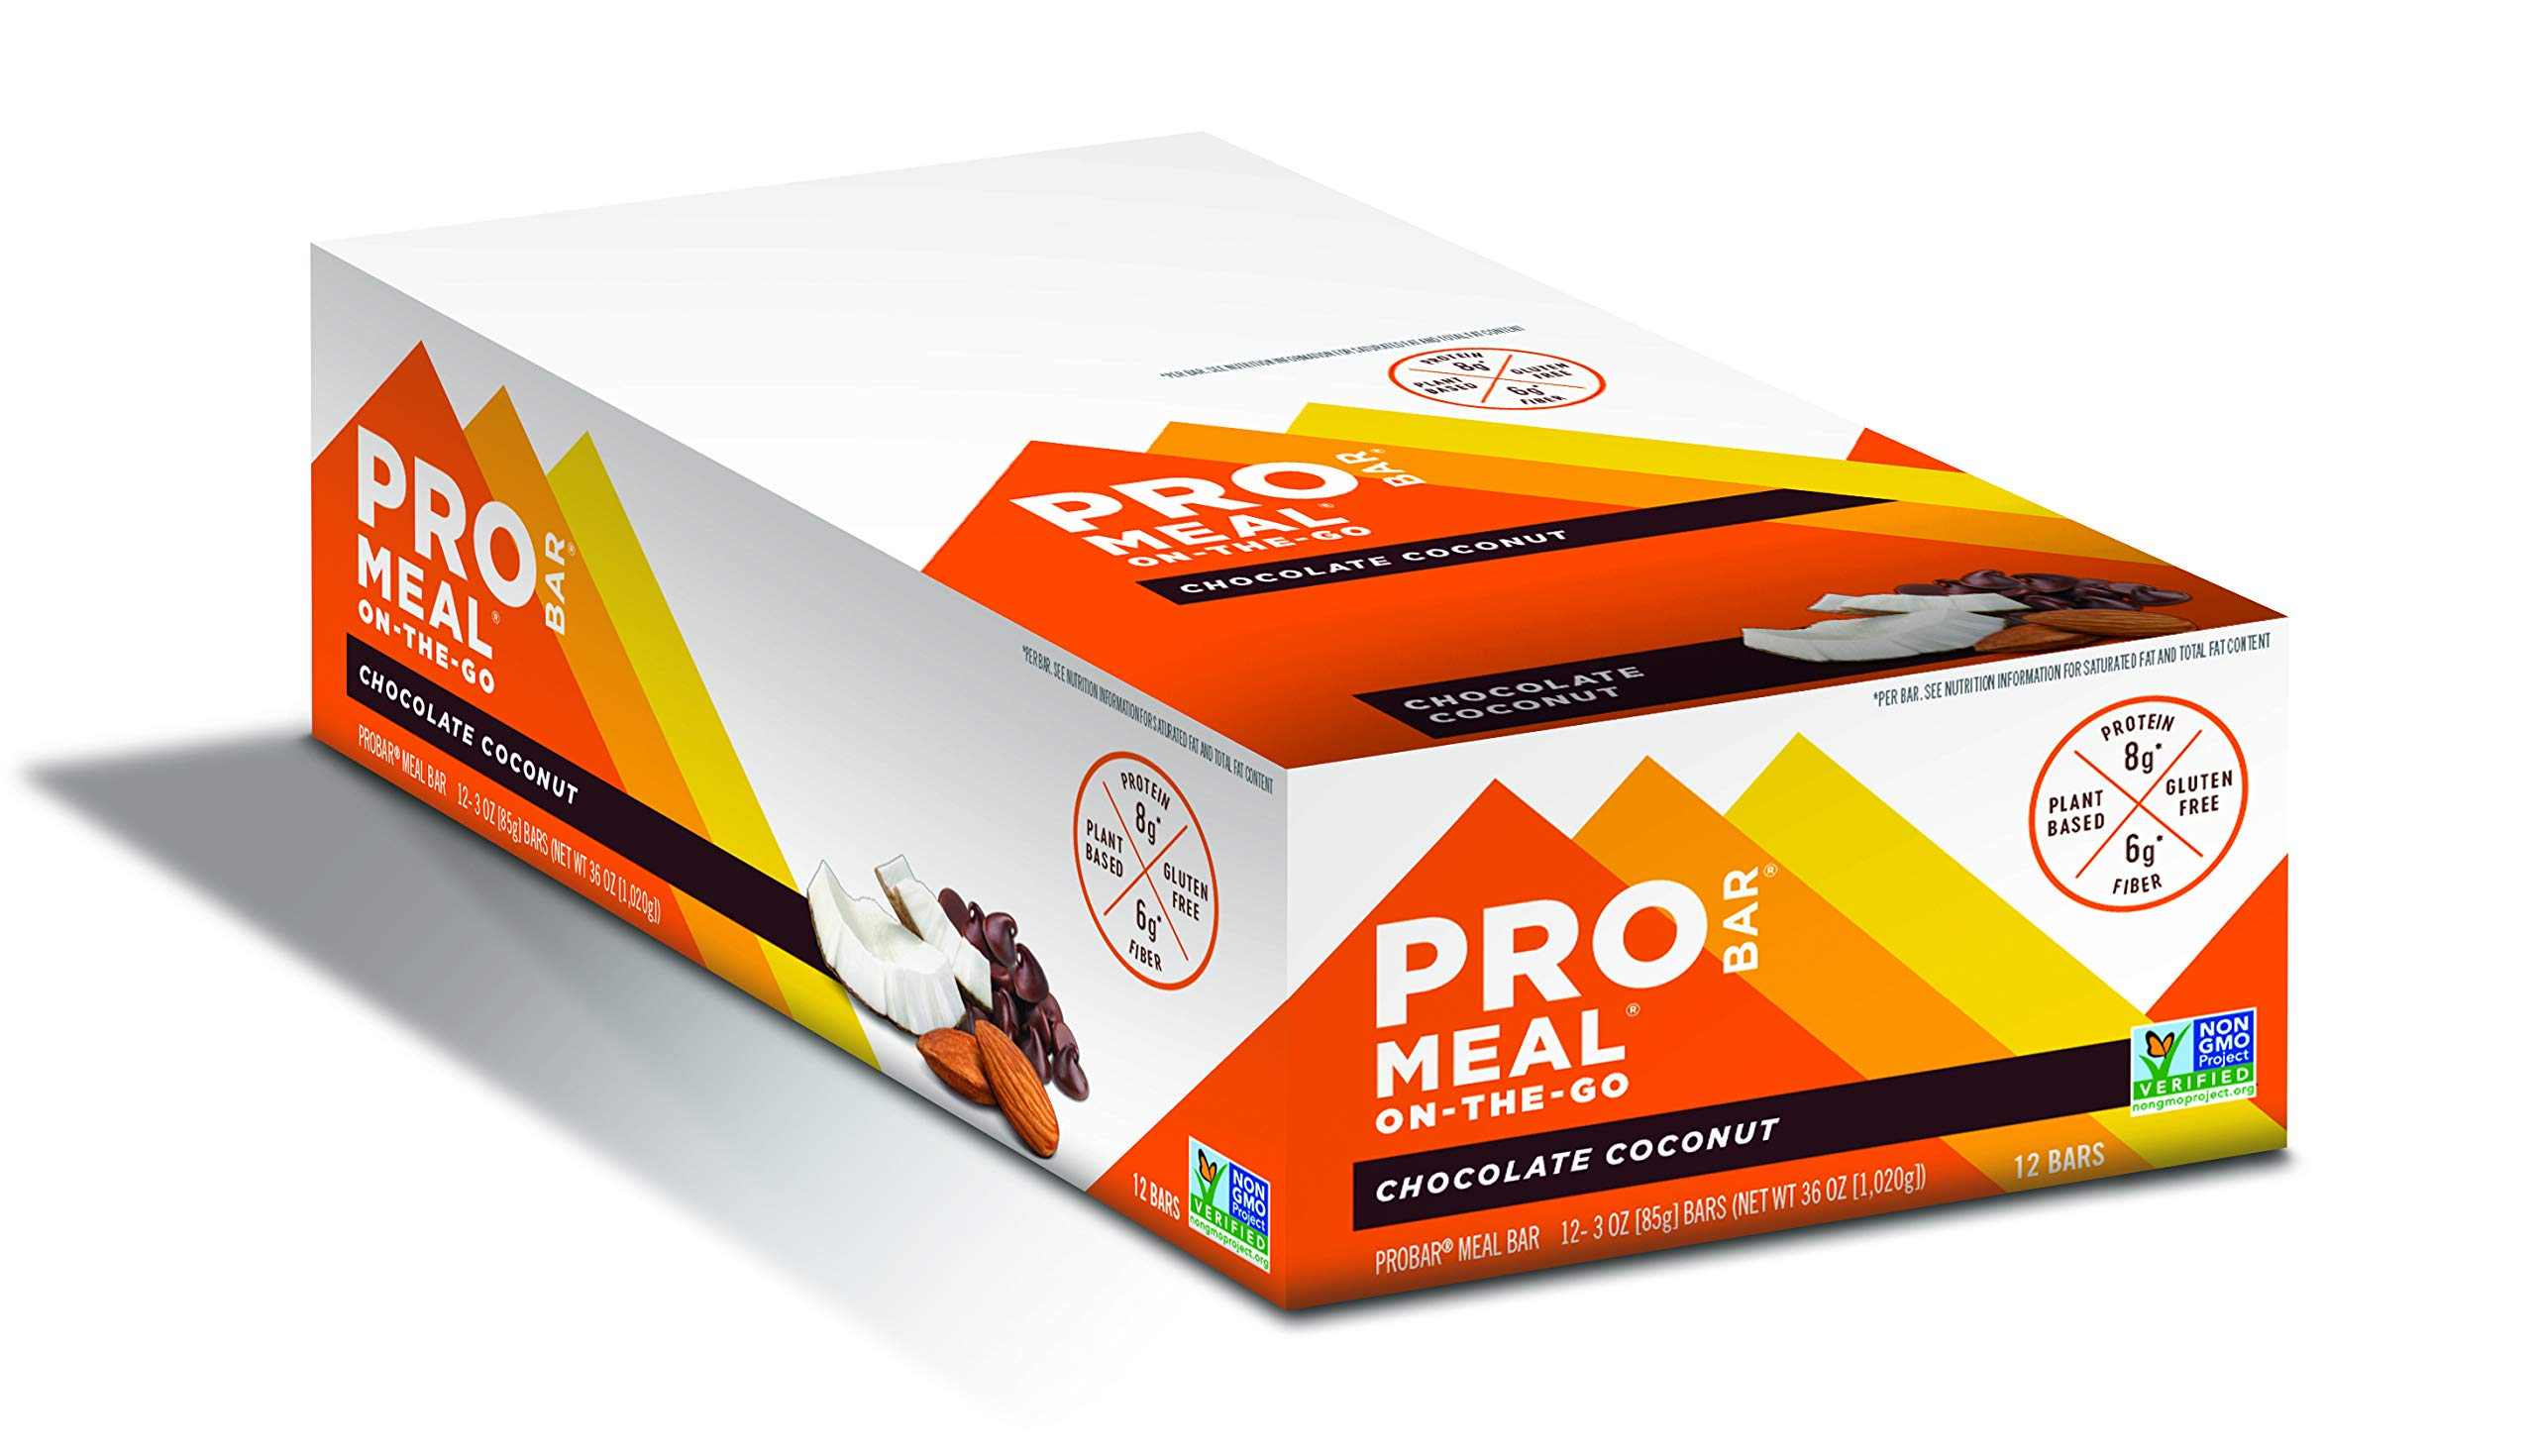 PROBAR - Meal Bar, Chocolate Coconut, Non-GMO, Gluten-Free, Certified Organic, Healthy, Plant-Based Whole Food Ingredients, Natural Energy (12 Count)